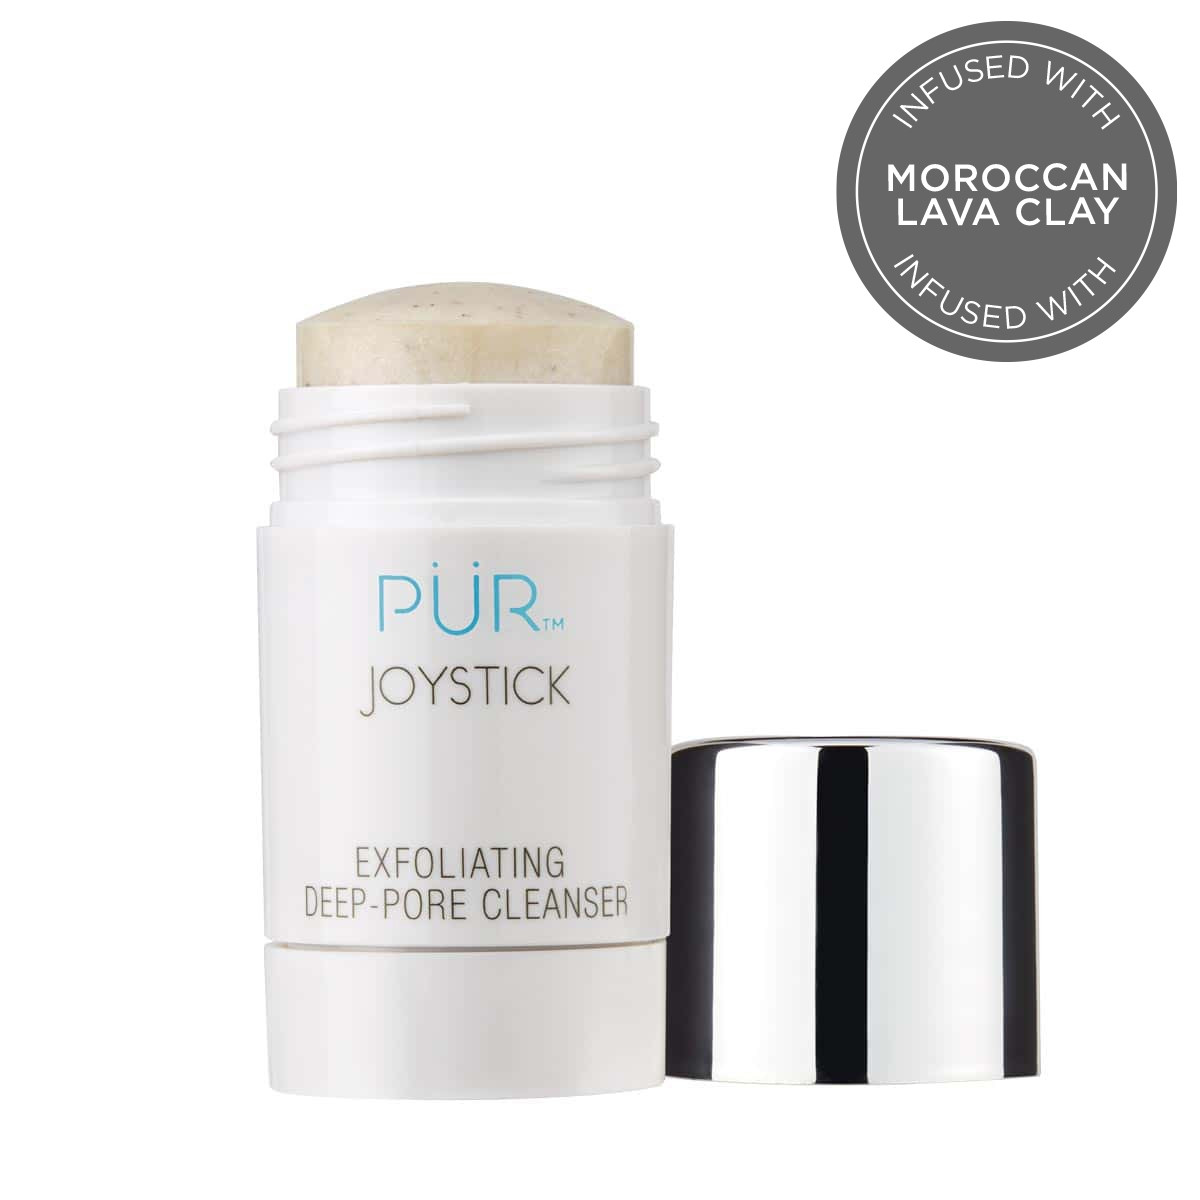 Joystick Exfoliating Deep Cleanser